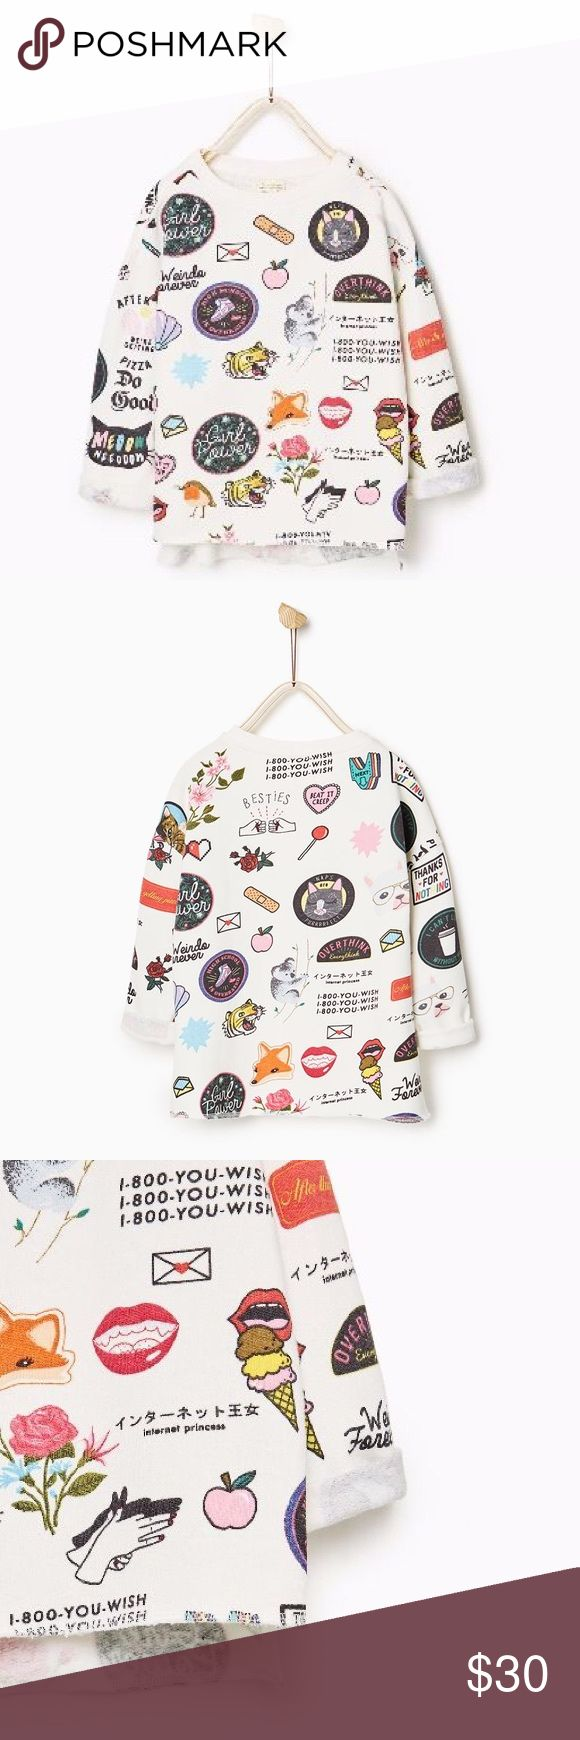 Printed Sweatshirt Zara Girls The funkiest little number! Japanese, koalas, tigers, foxes, lips, charades and more! Round neck sweatshirt with long turn-up sleeves. Side slits at the hem. Zara Shirts & Tops Sweatshirts & Hoodies